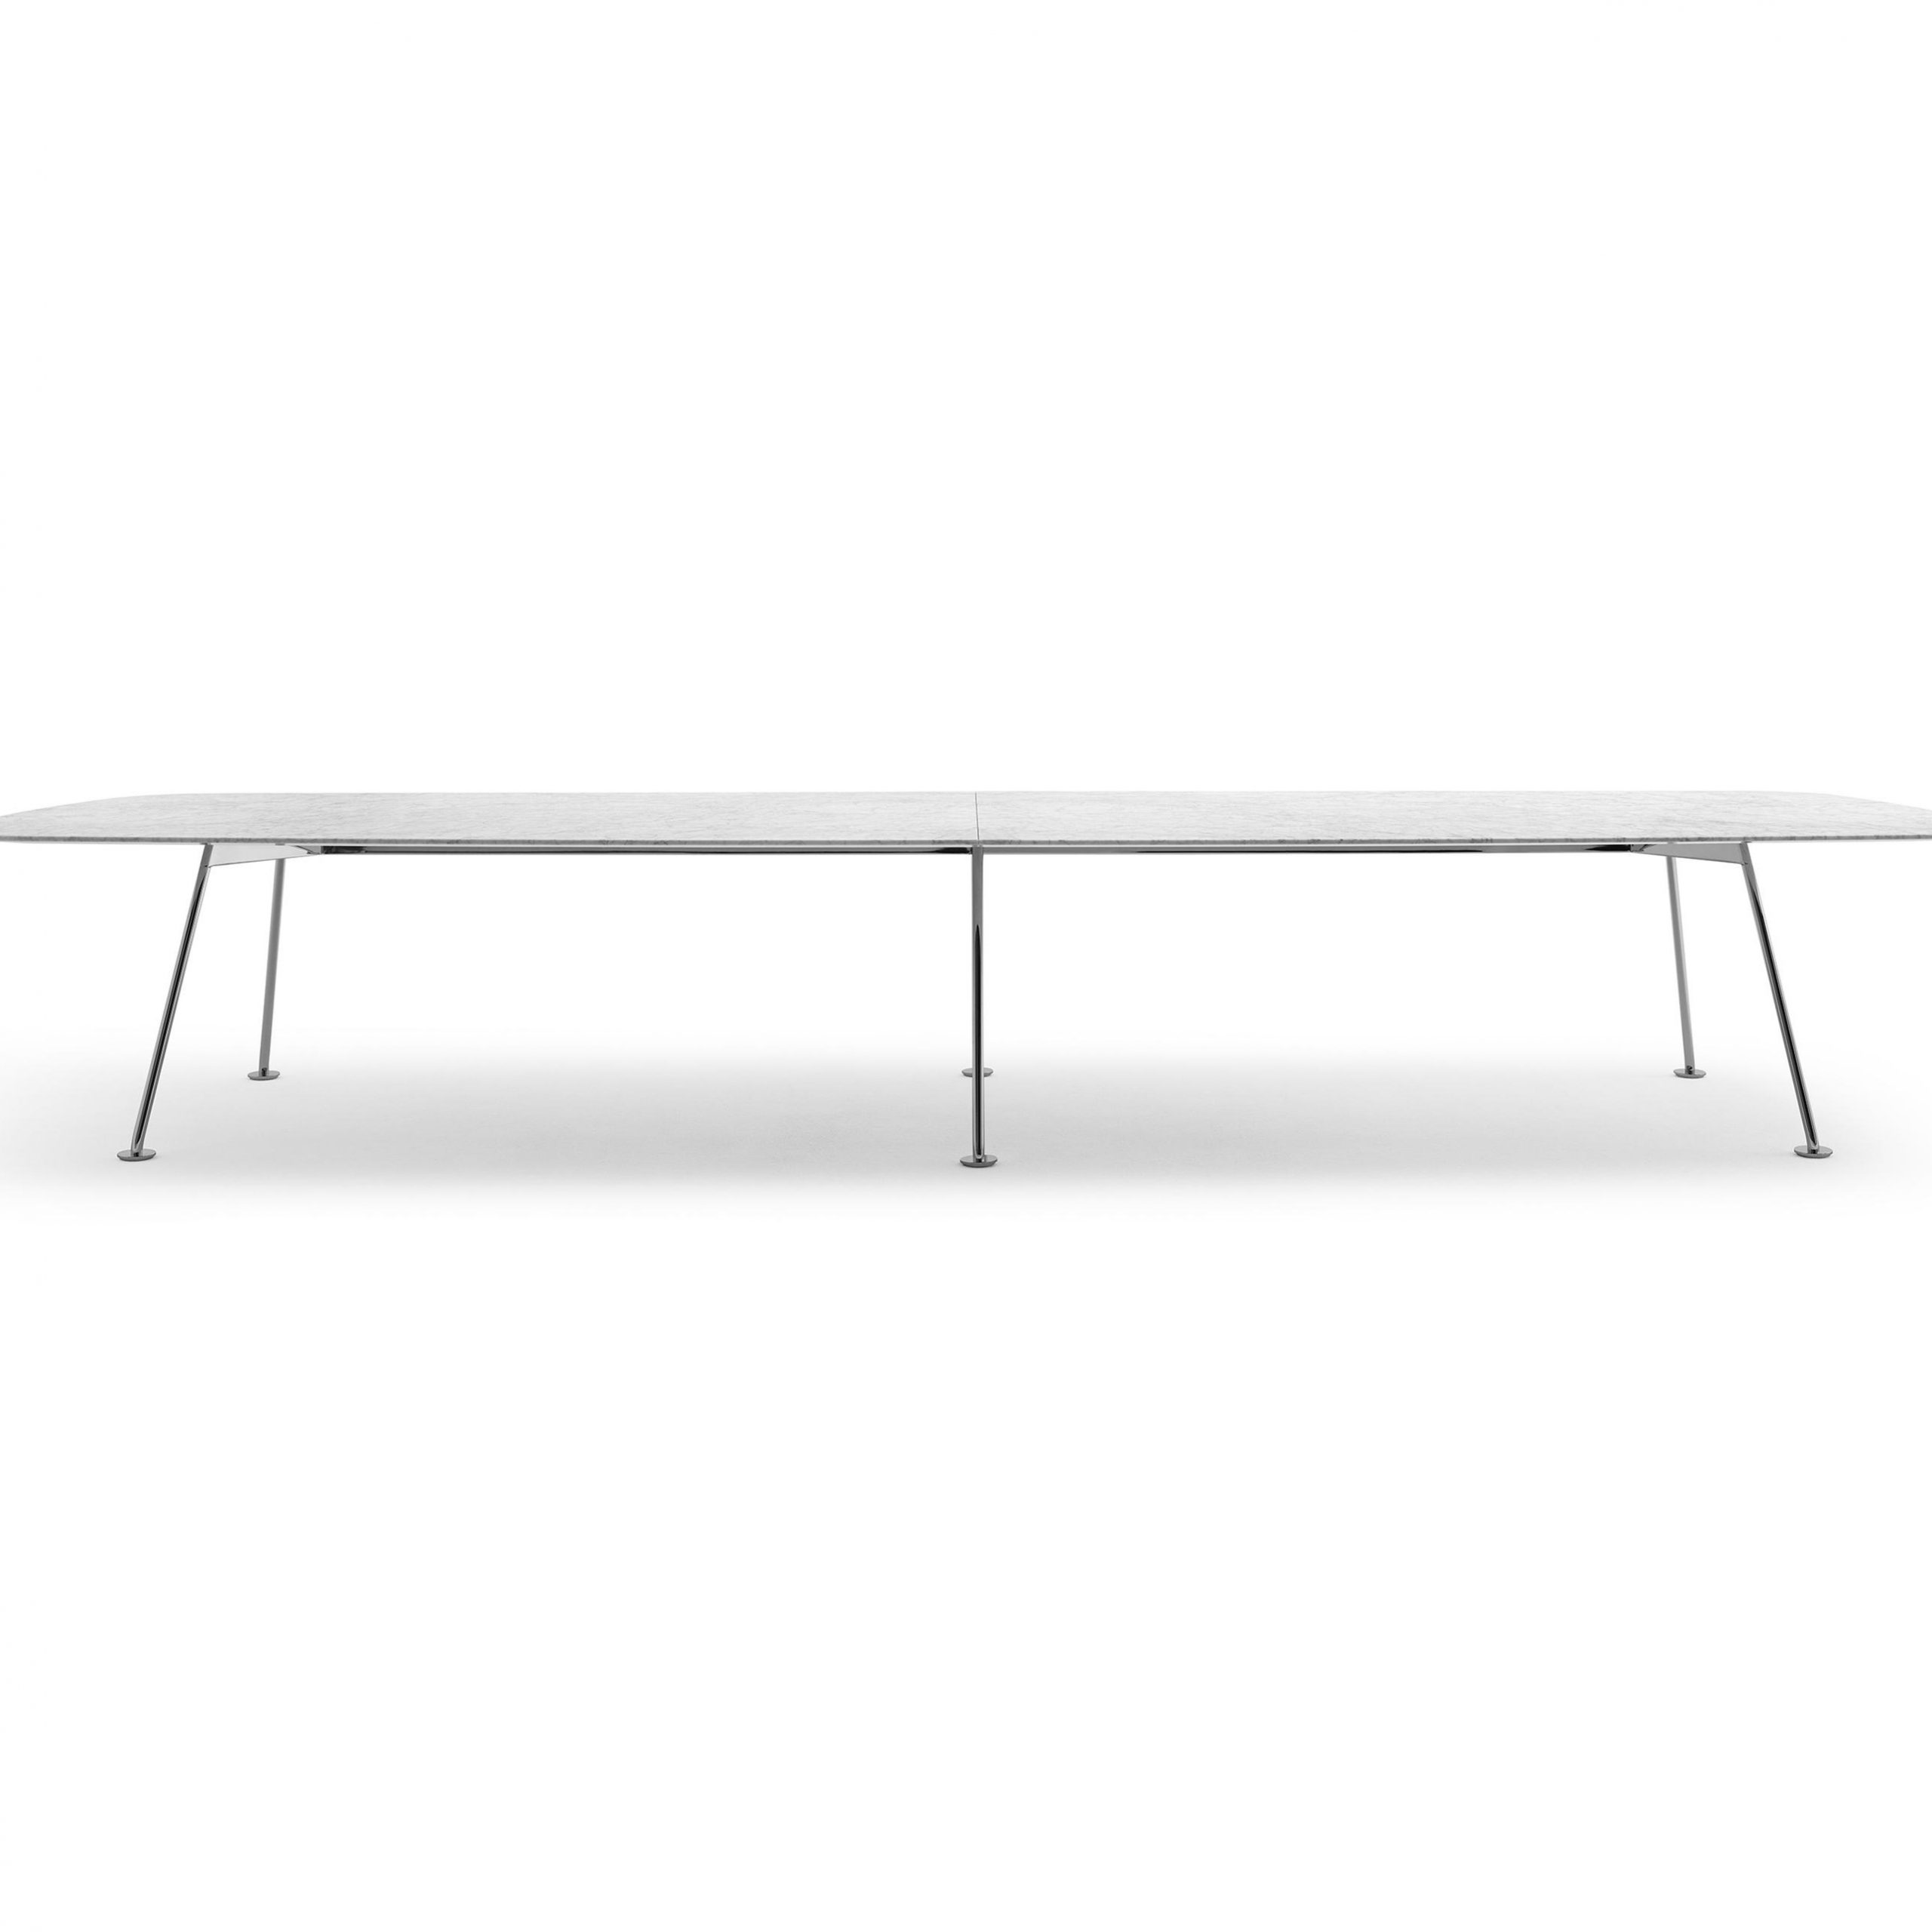 Grasshopper Table & Designer Furniture | Architonic Within Latest Gray Wash Banks Extending Dining Tables (View 20 of 25)